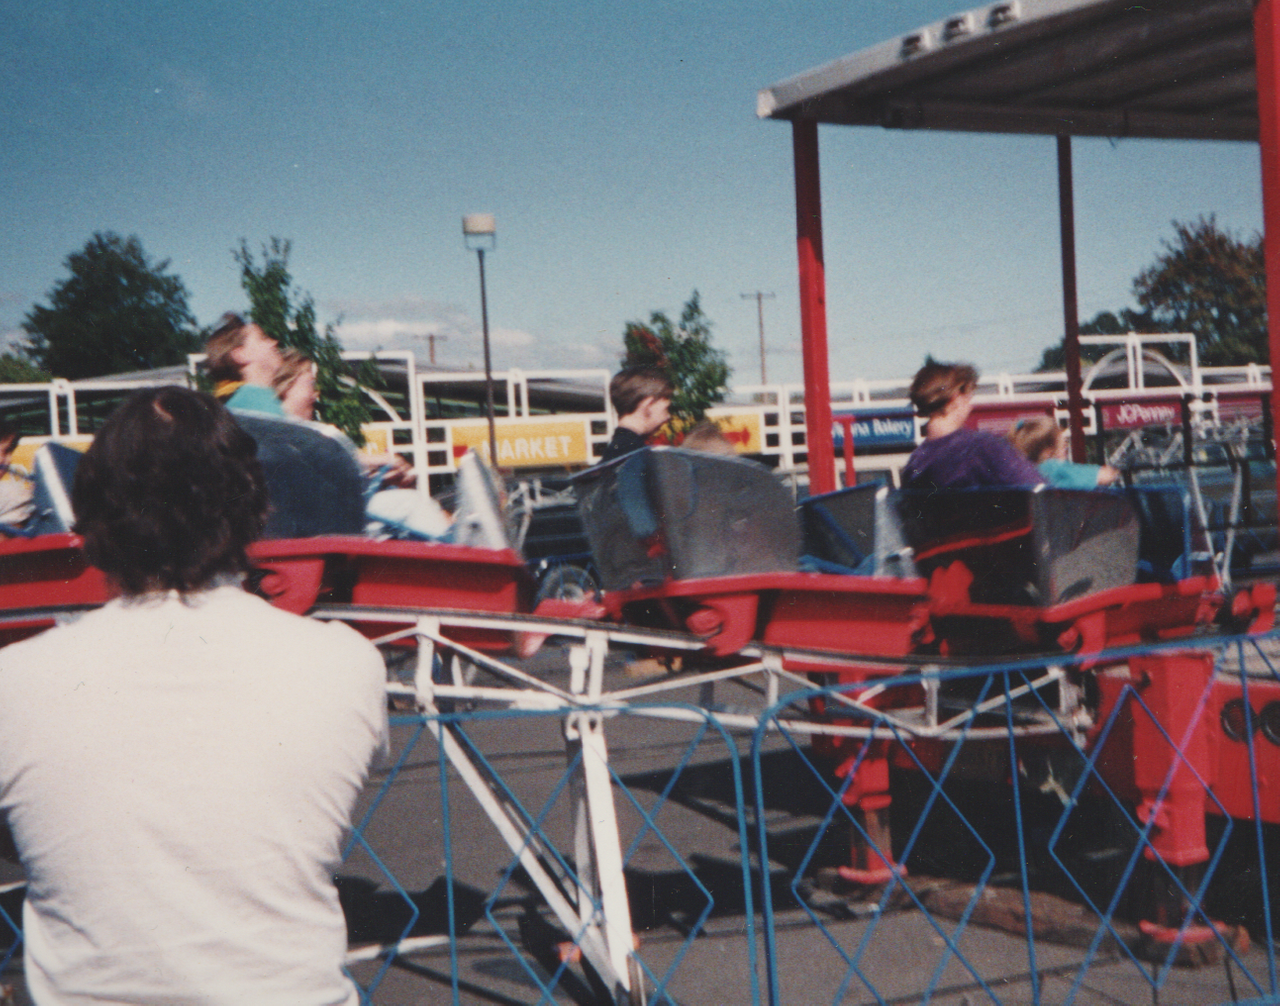 1992-09 - Fair in Forest Grove, parade, rides, Katie, Rick, Joey, Crystal, by Marilyn-11.png